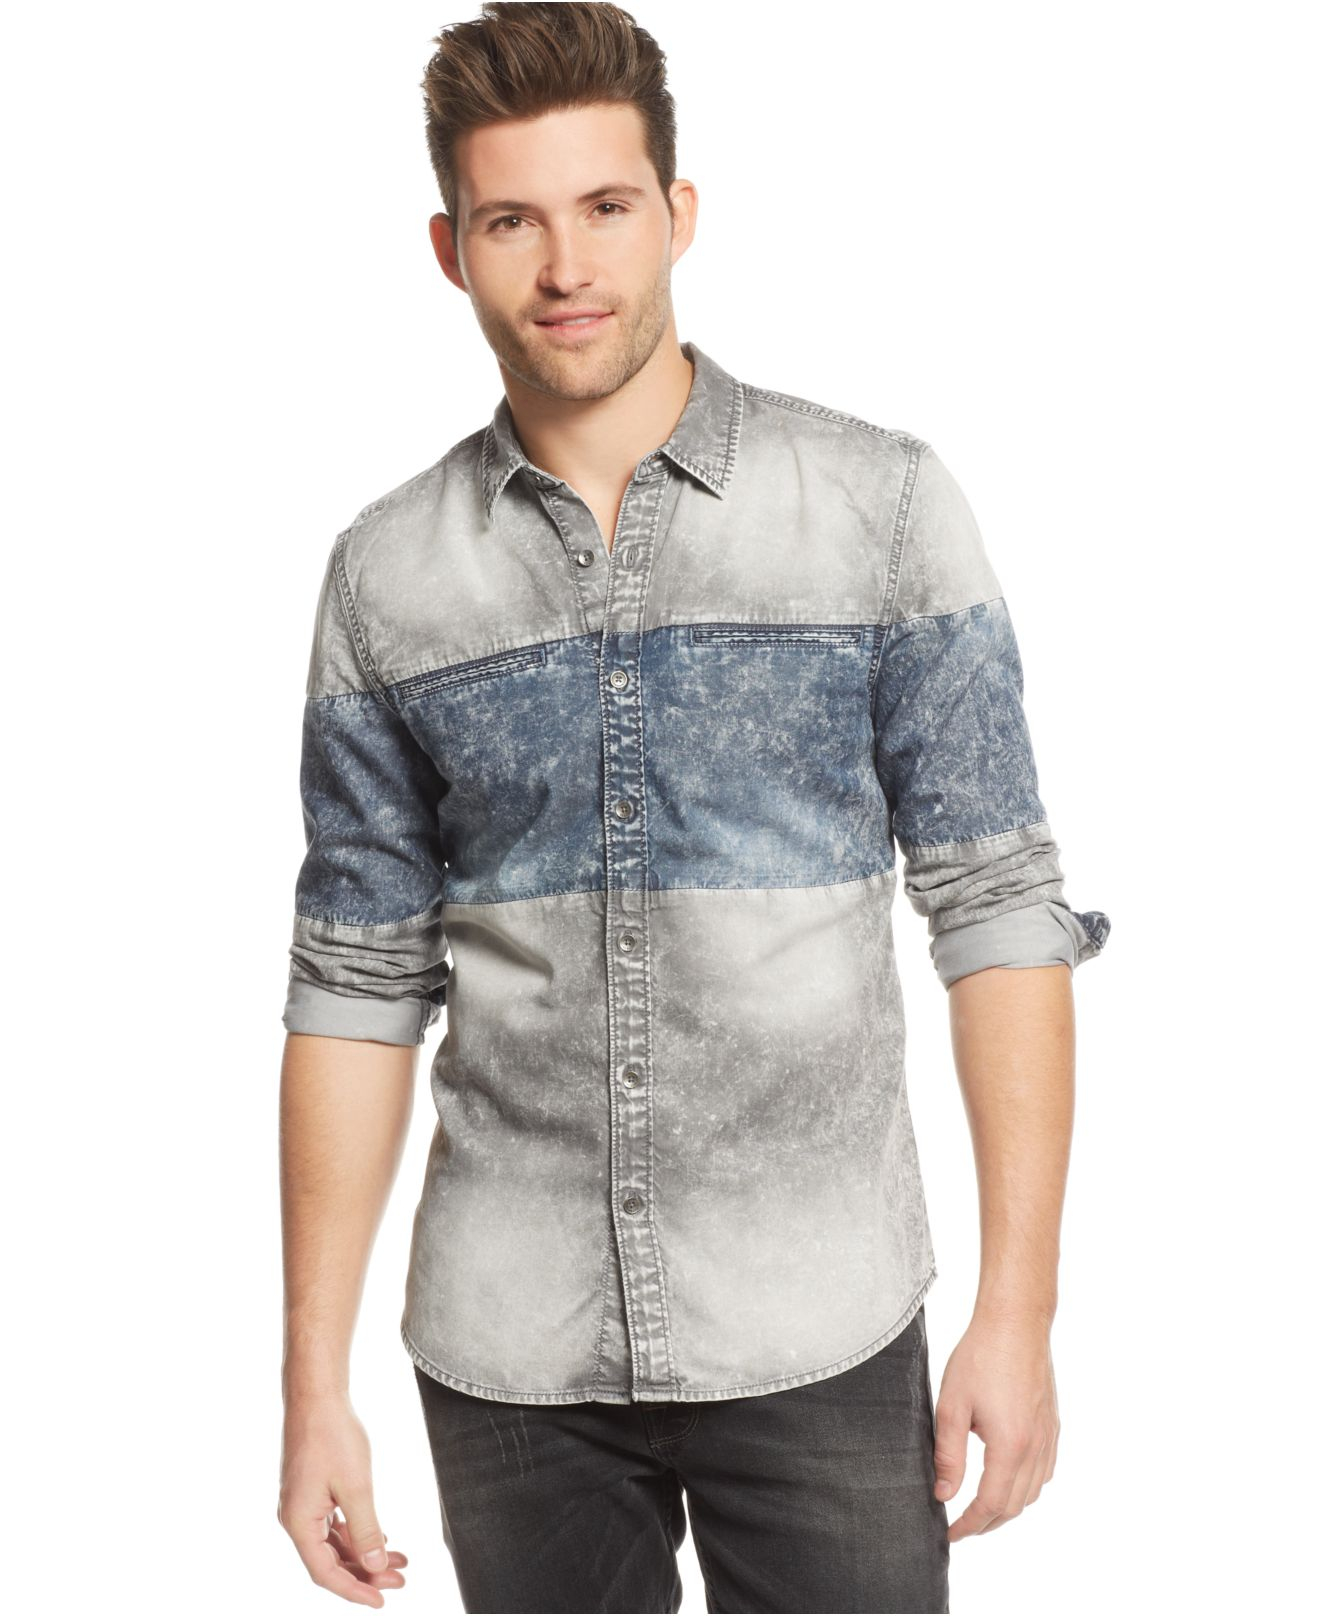 Lyst Guess Slim Fit Chest Blocked Denim Shirt In Gray